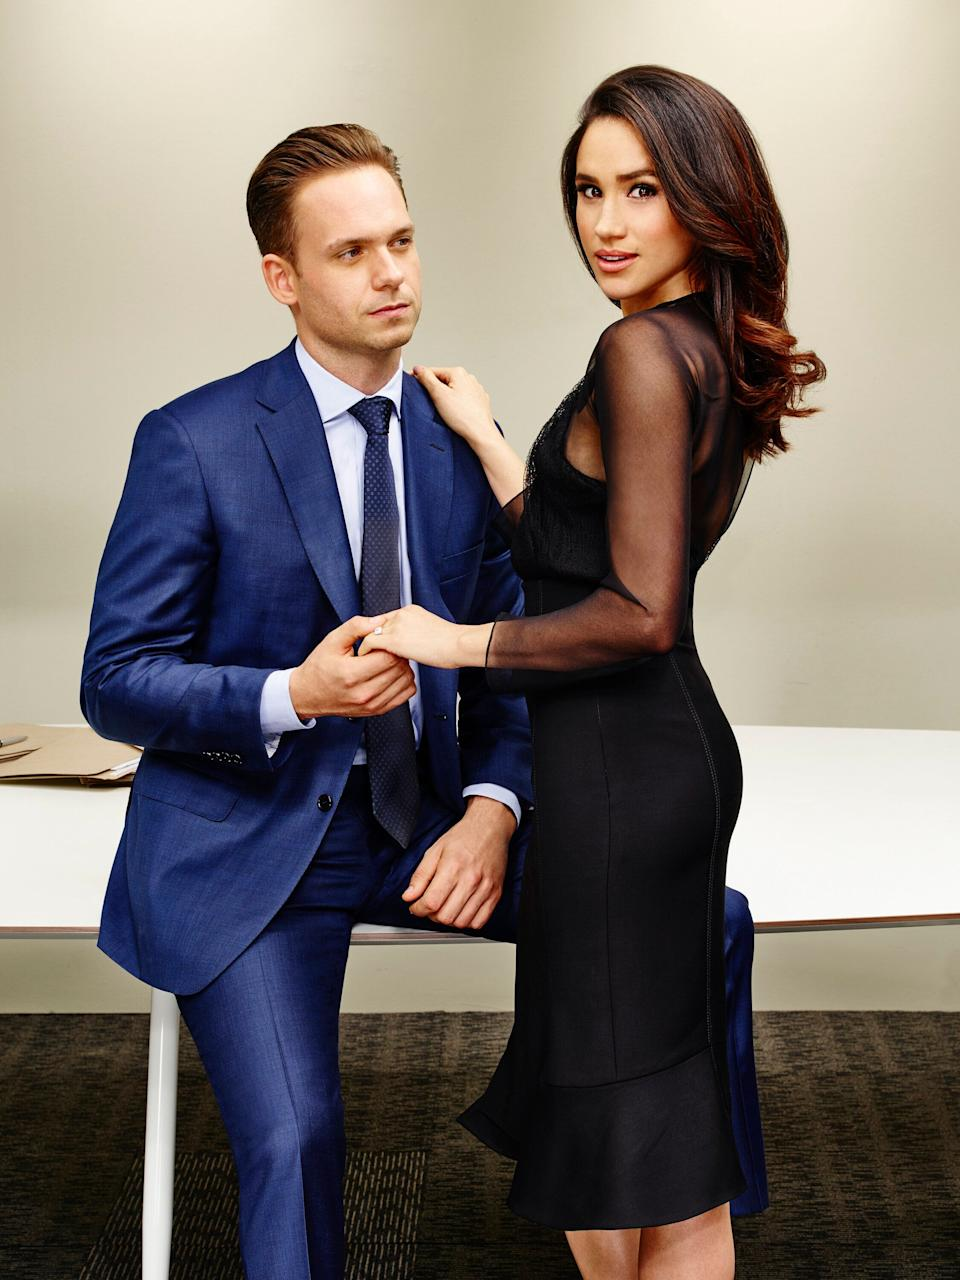 Patrick J. Adams played Michael Ross and Meghan Markle played Rachel Zane on Suits. (Photo: USA Network via Getty Images)